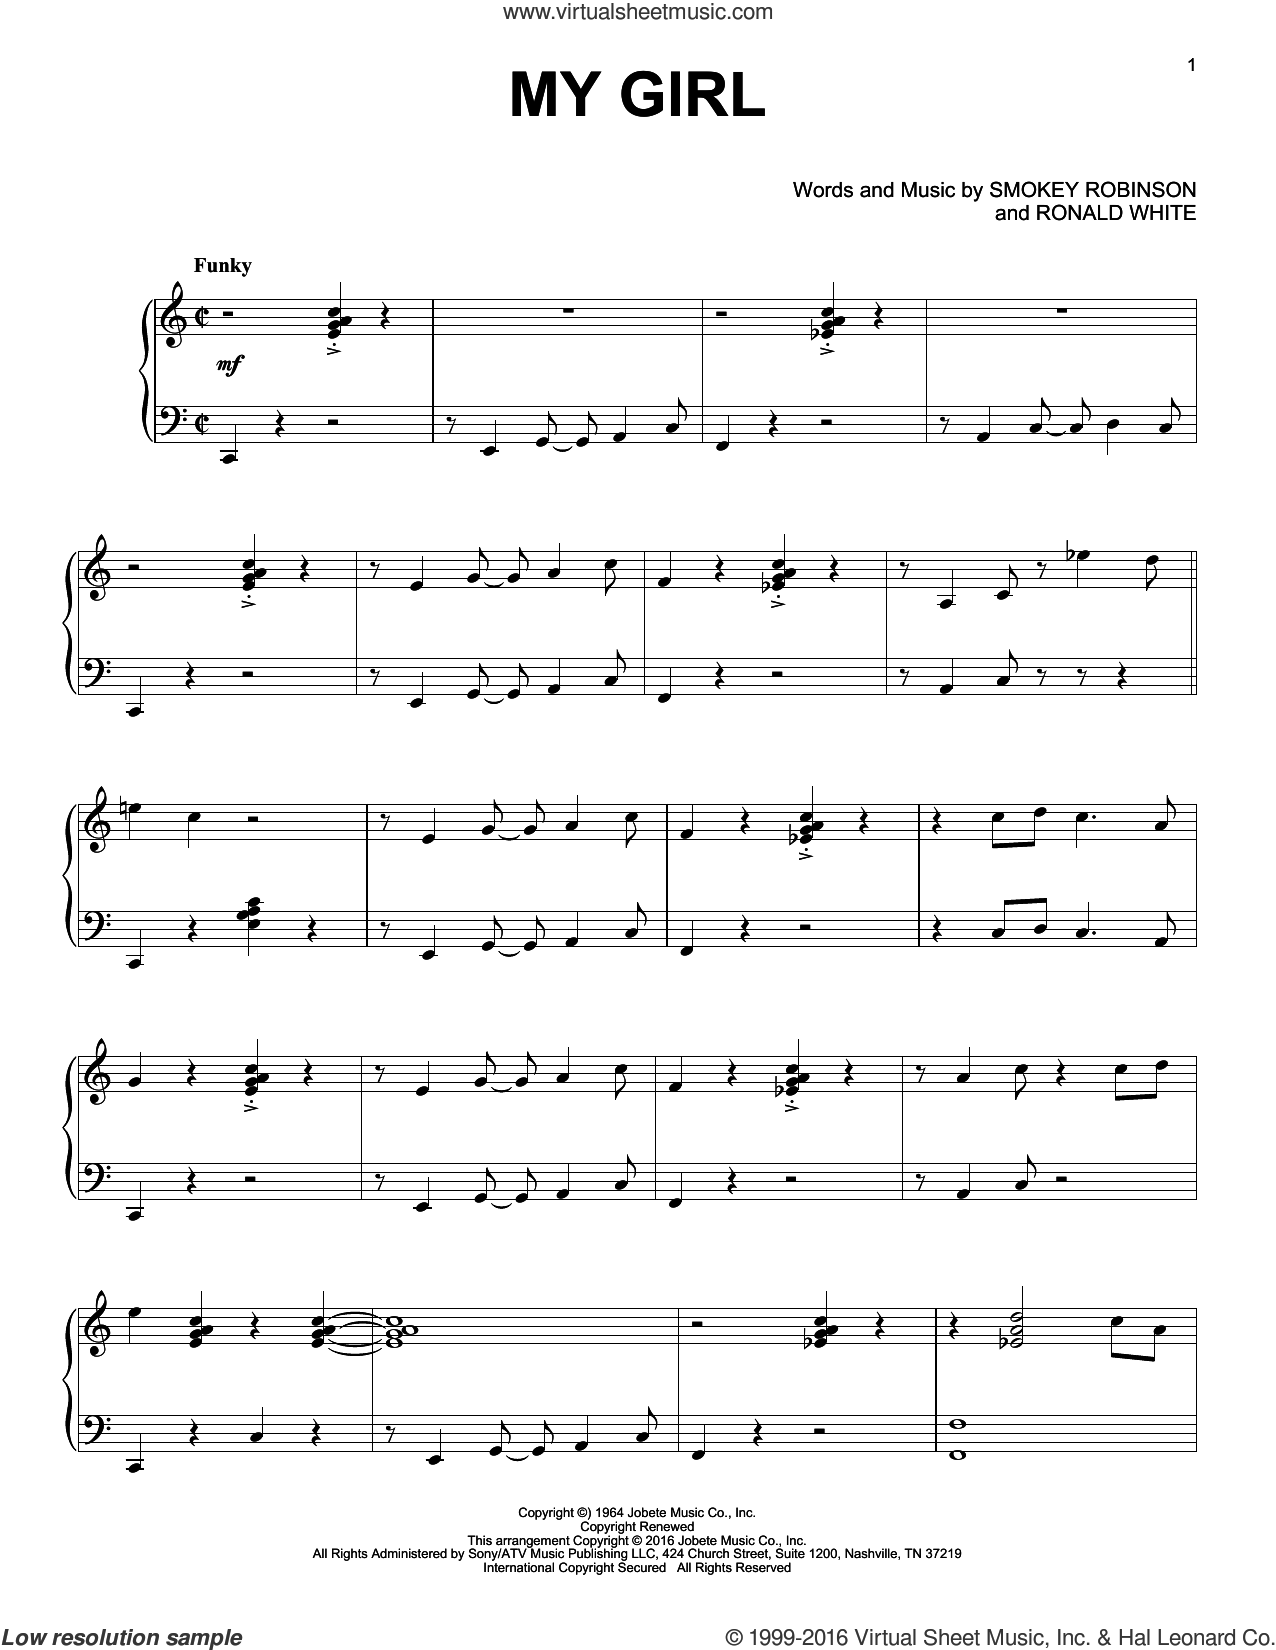 My Girl [Jazz version] sheet music for piano solo by The Temptations and Ronald White, intermediate skill level